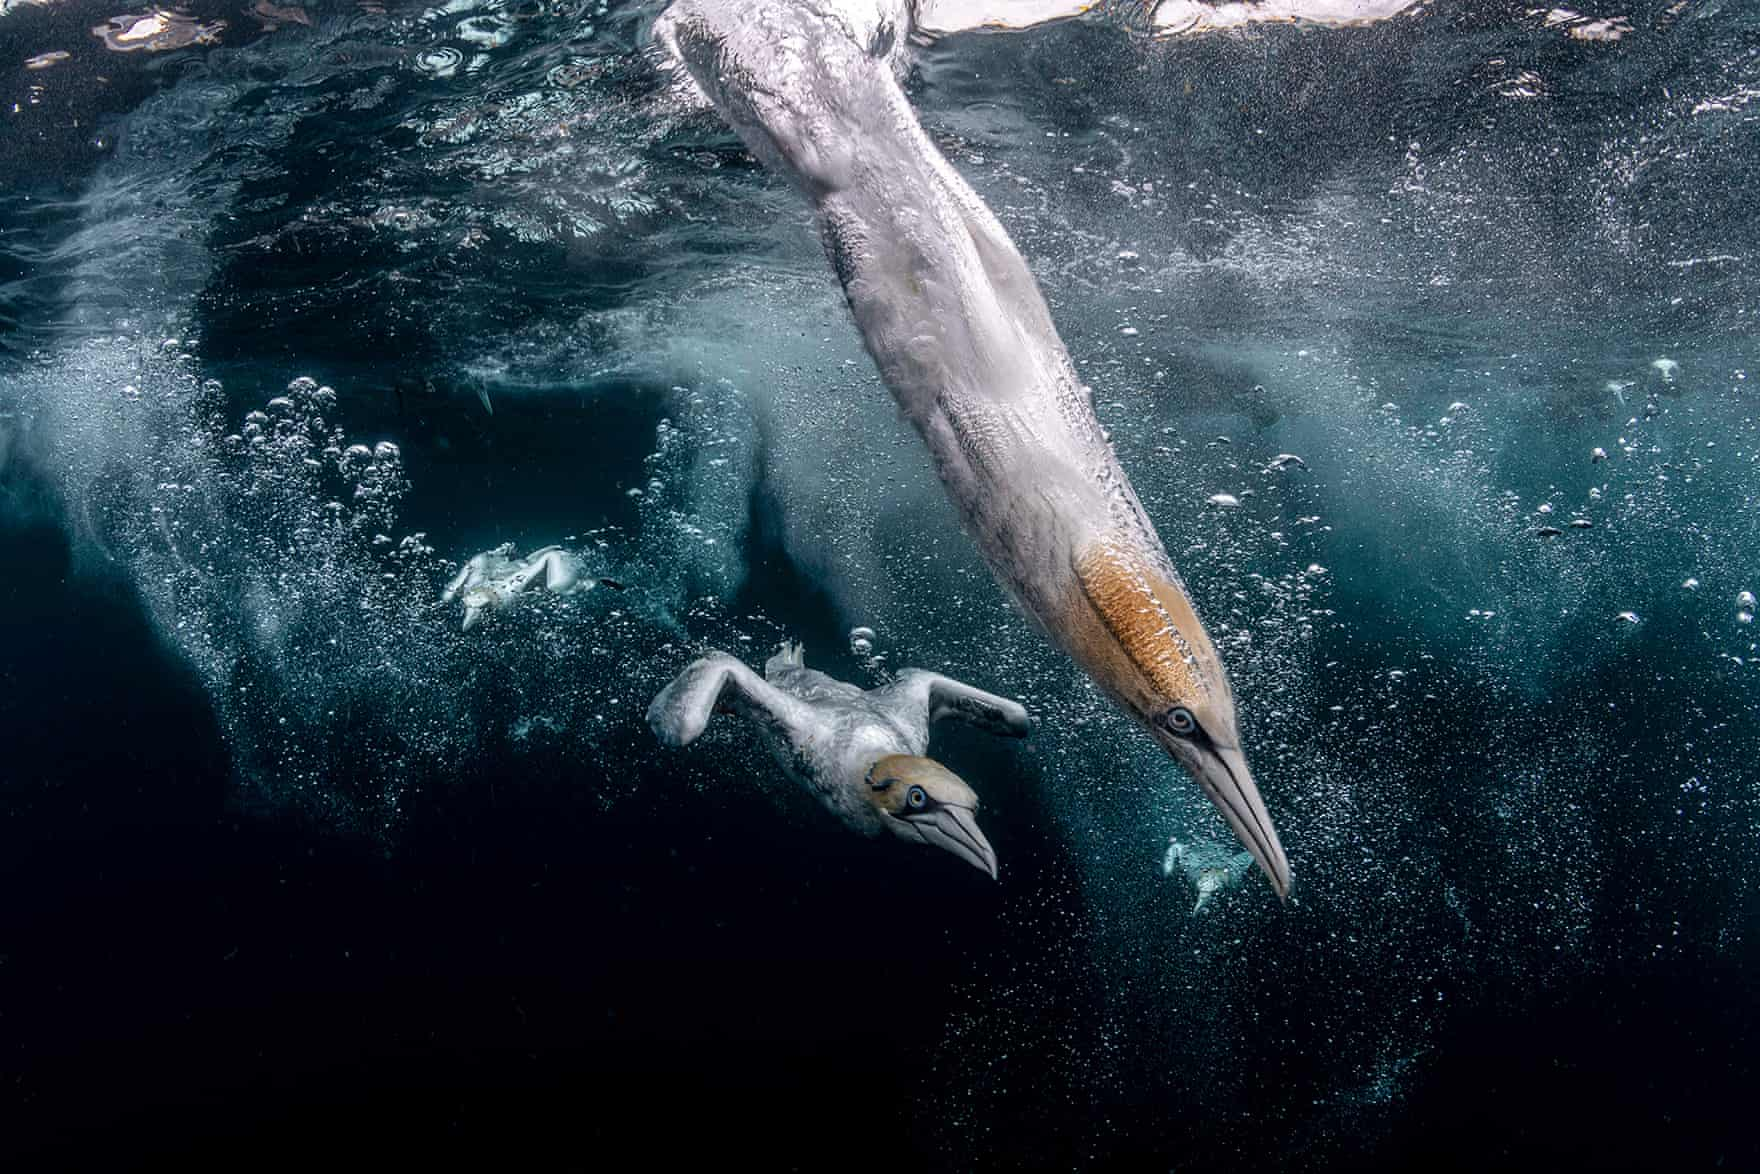 Diving gannets hit the water off the Isle of Noss, Shetland, UK